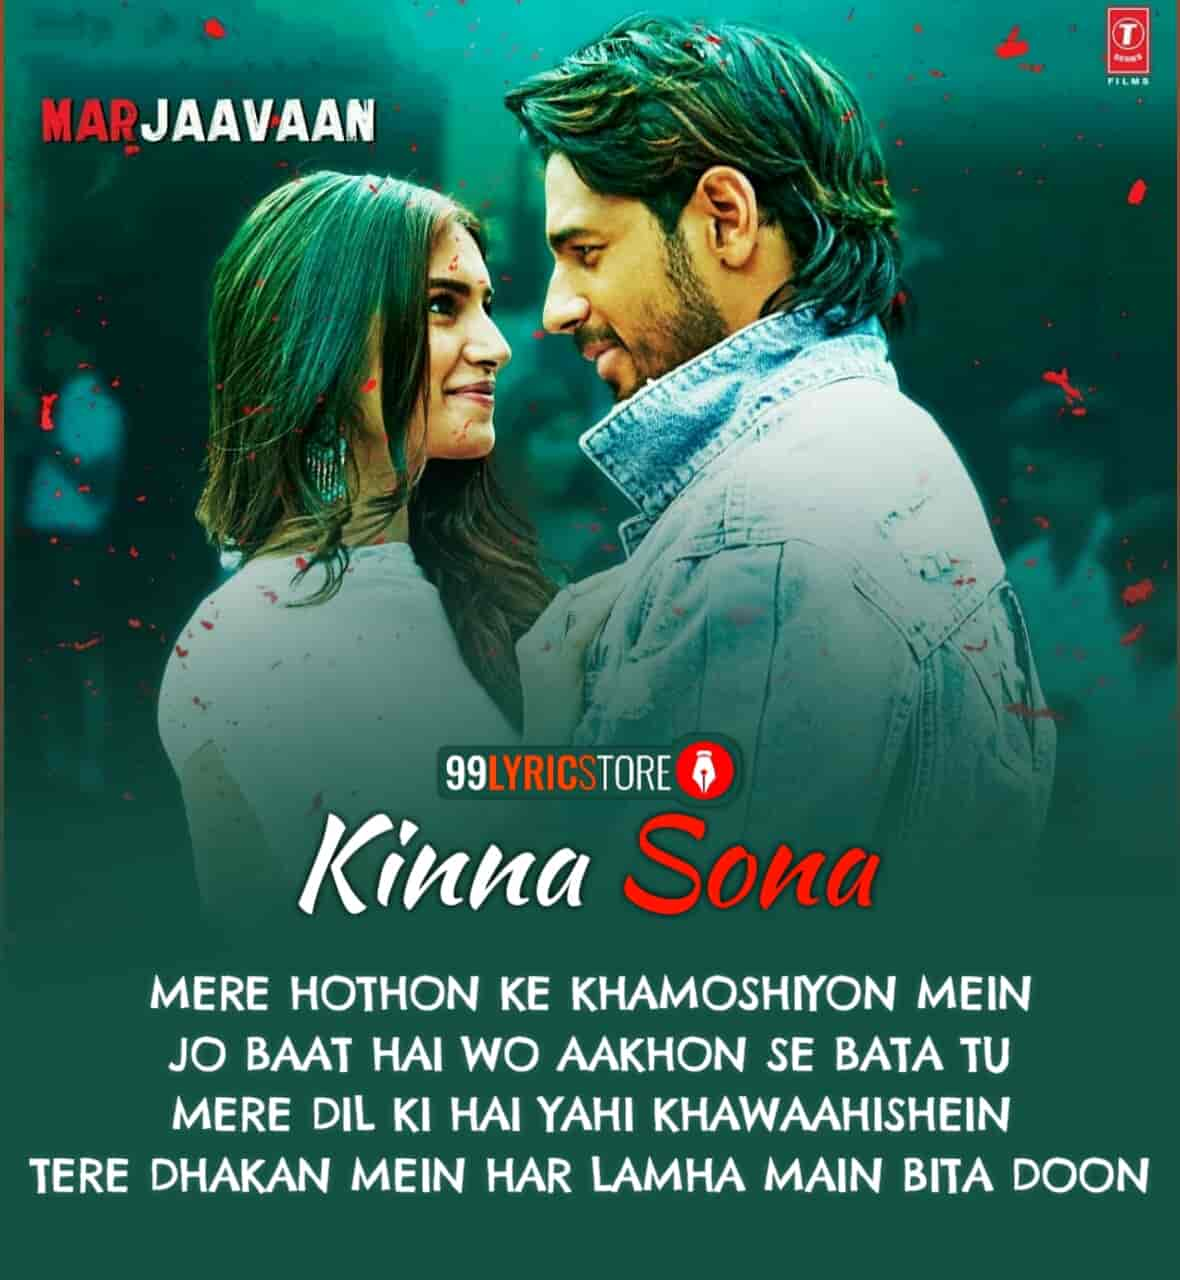 Kinna Sona Marjaavaan Song Images